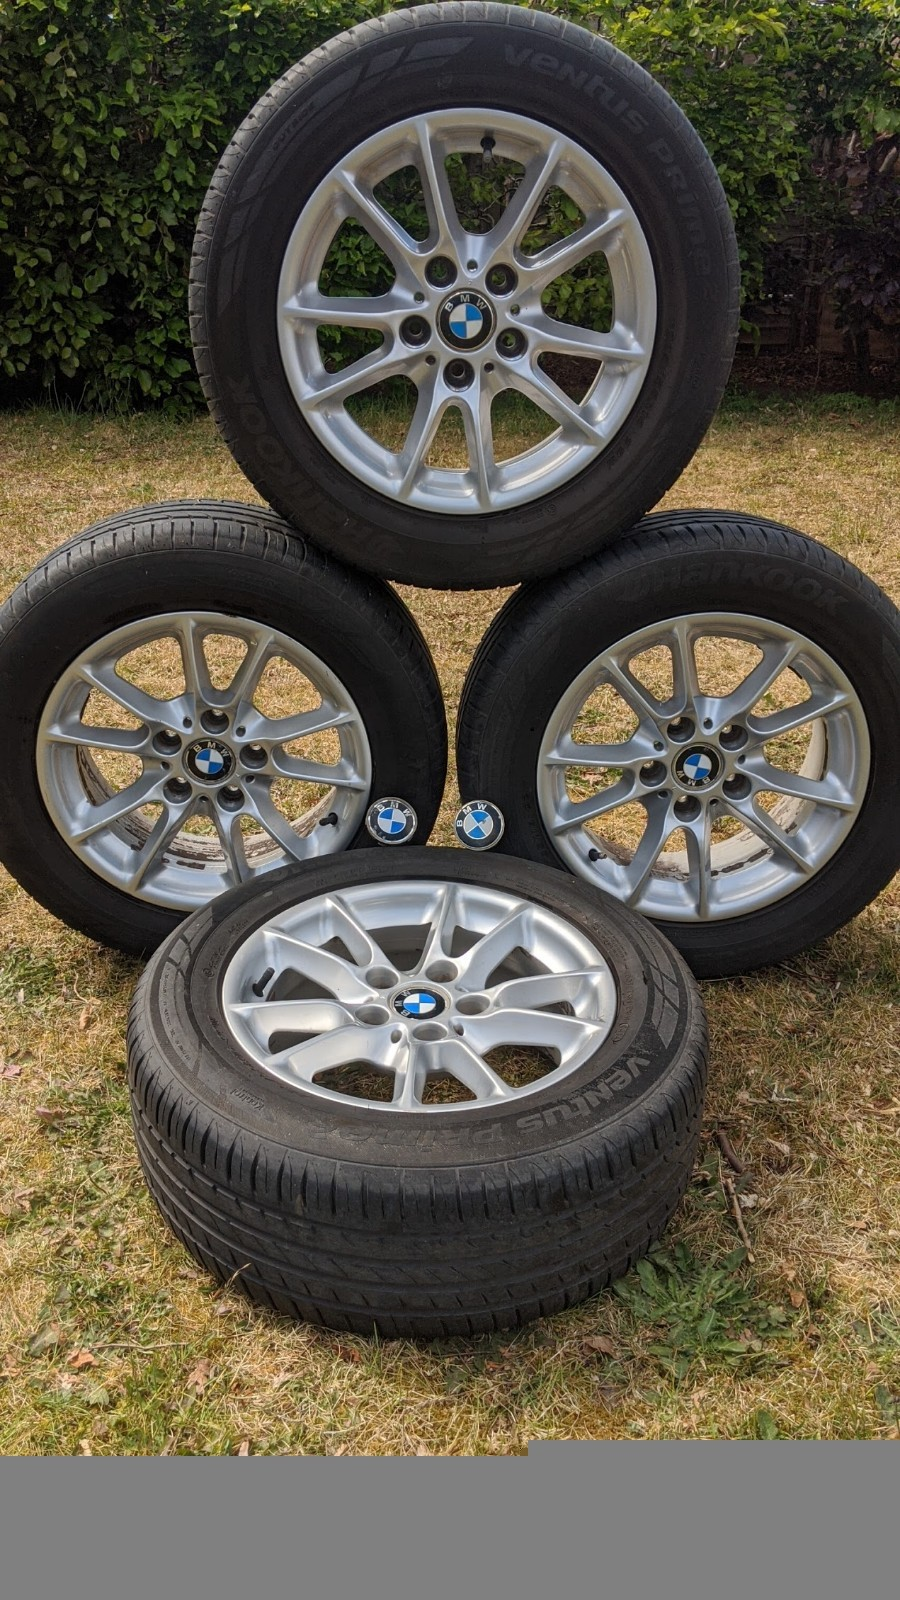 BMW E39 Alloys / Photography by Aardvark VonEssfolk / Uploaded 23rd May 2020 @ 05:46 PM